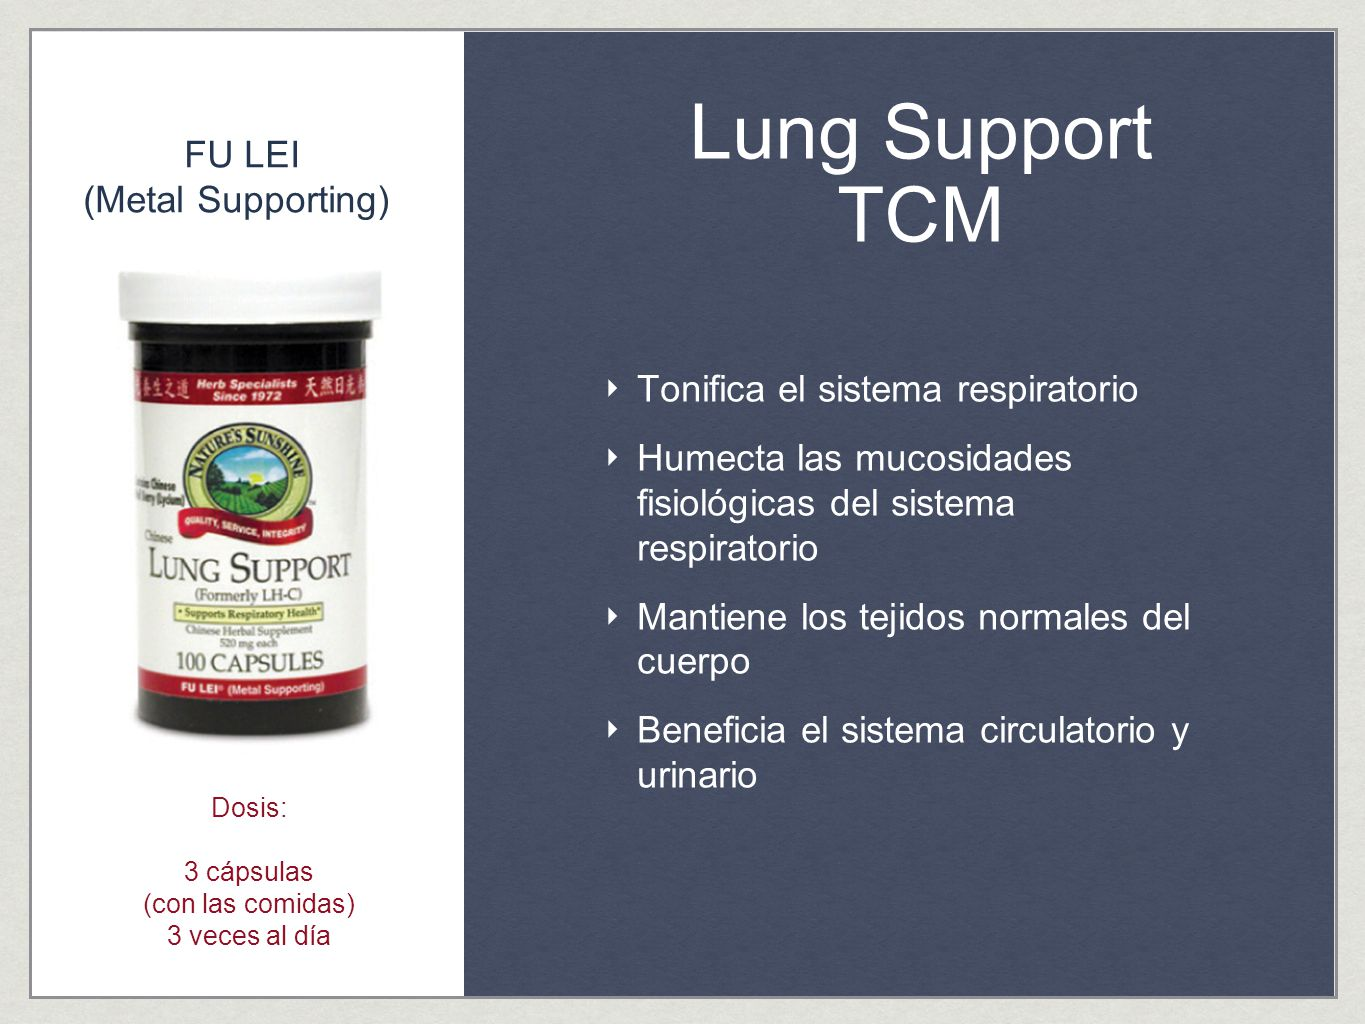 Lung Support TCM FU LEI (Metal Supporting)